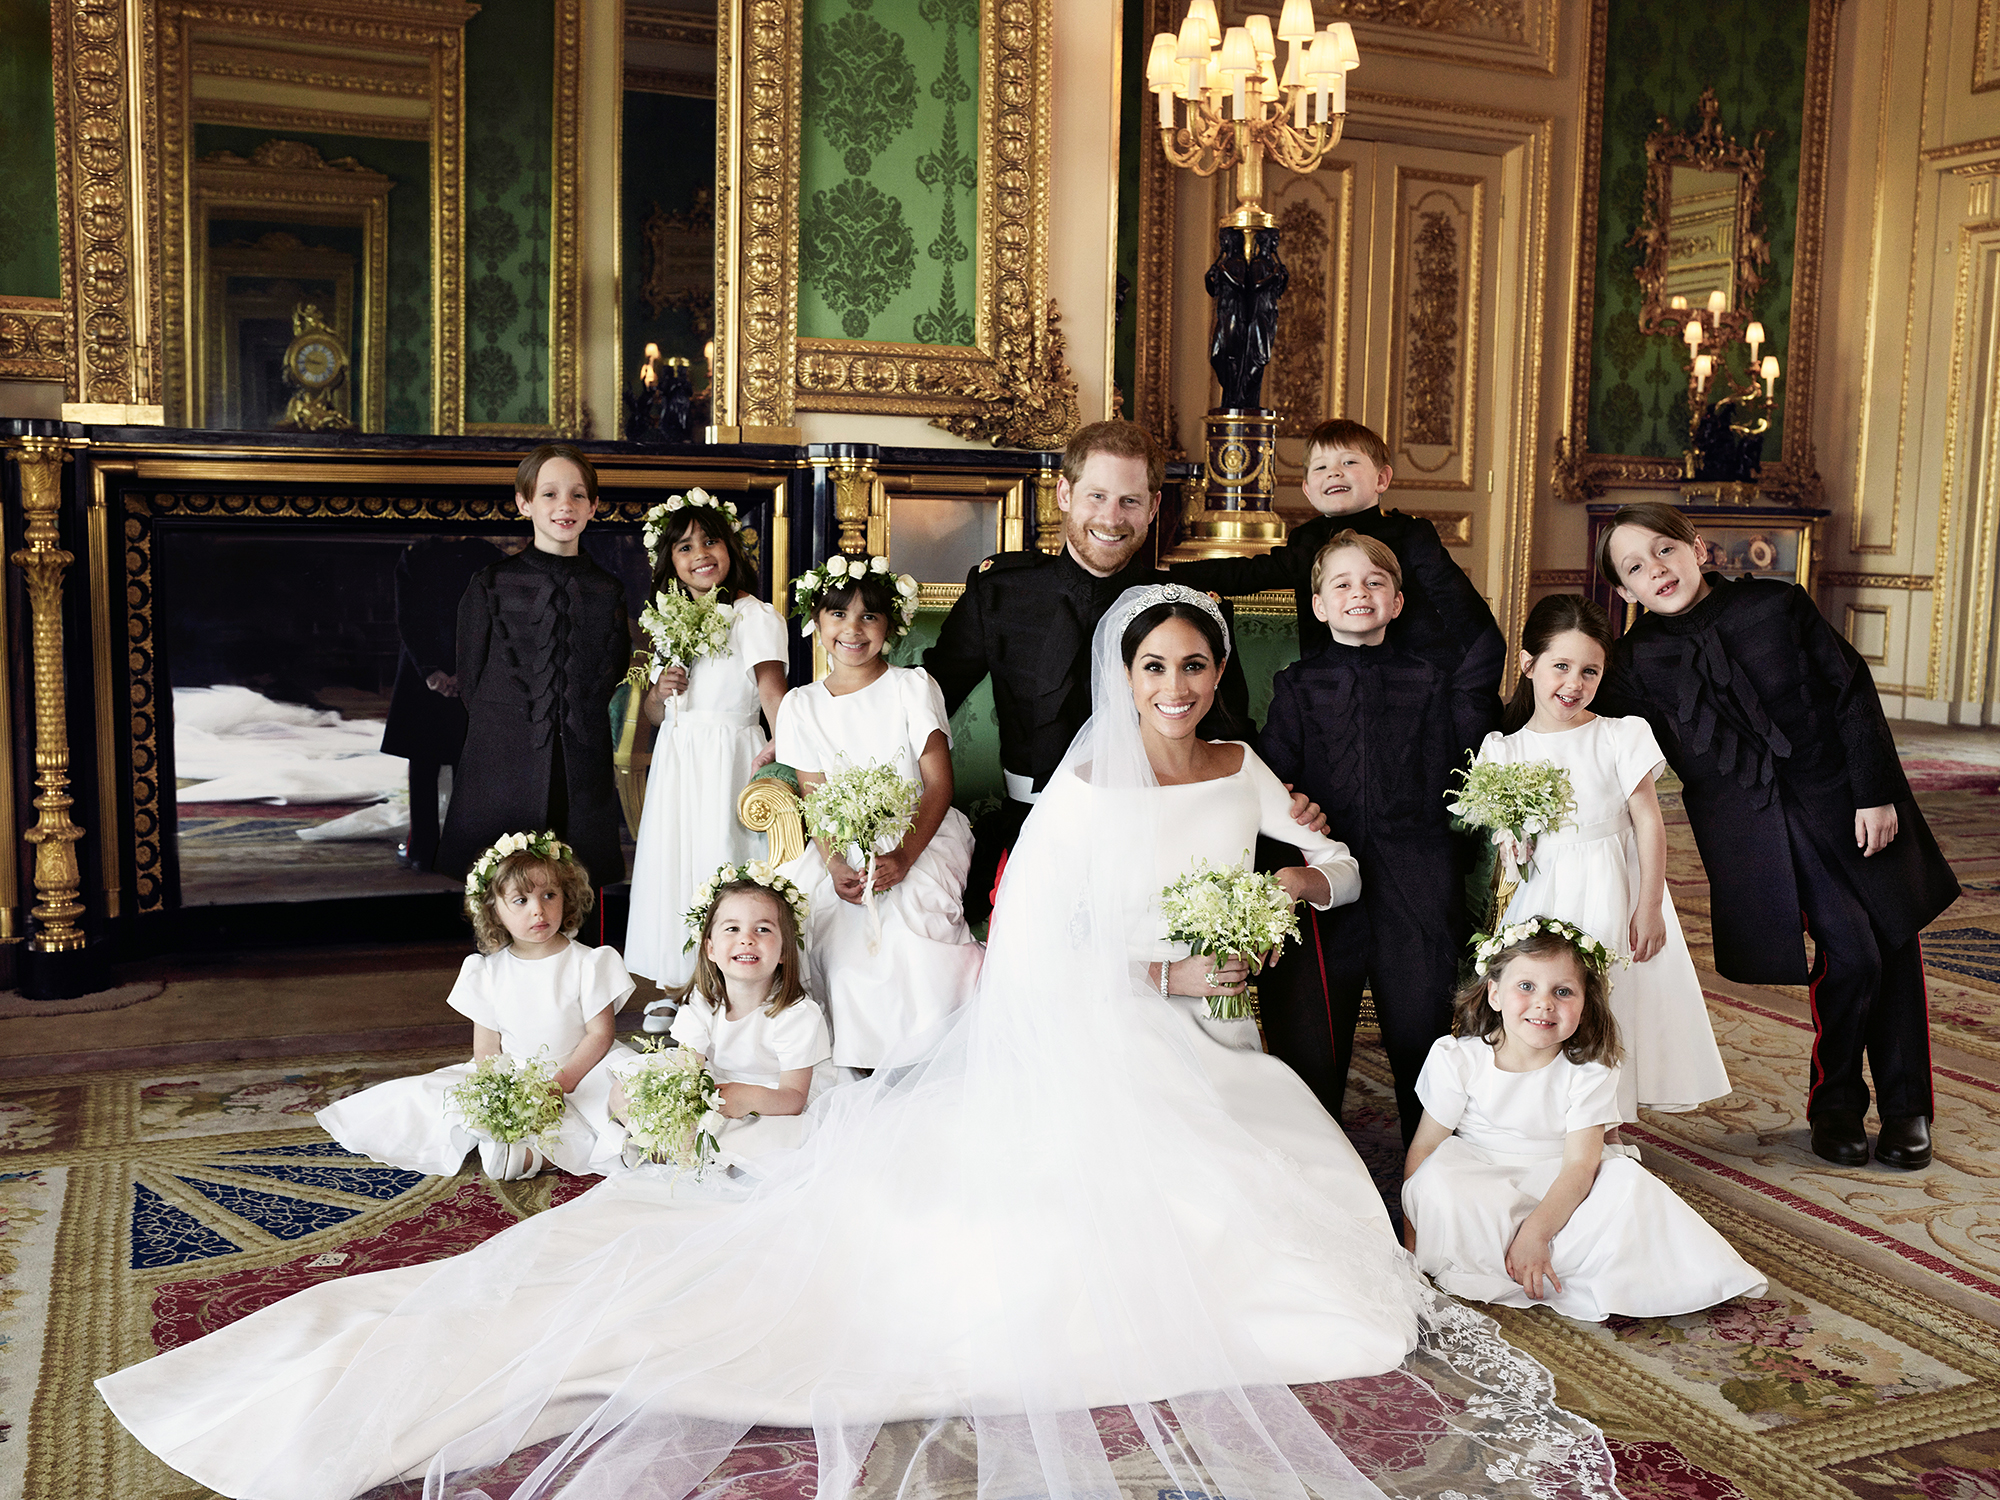 Prince Harry Wedding Royal Family Photo Prince Harry's wedding gesture was almost ruined! On the day of the royal wedding, he went on a mission to hand-pick some flowers for Meghan's bouquet...